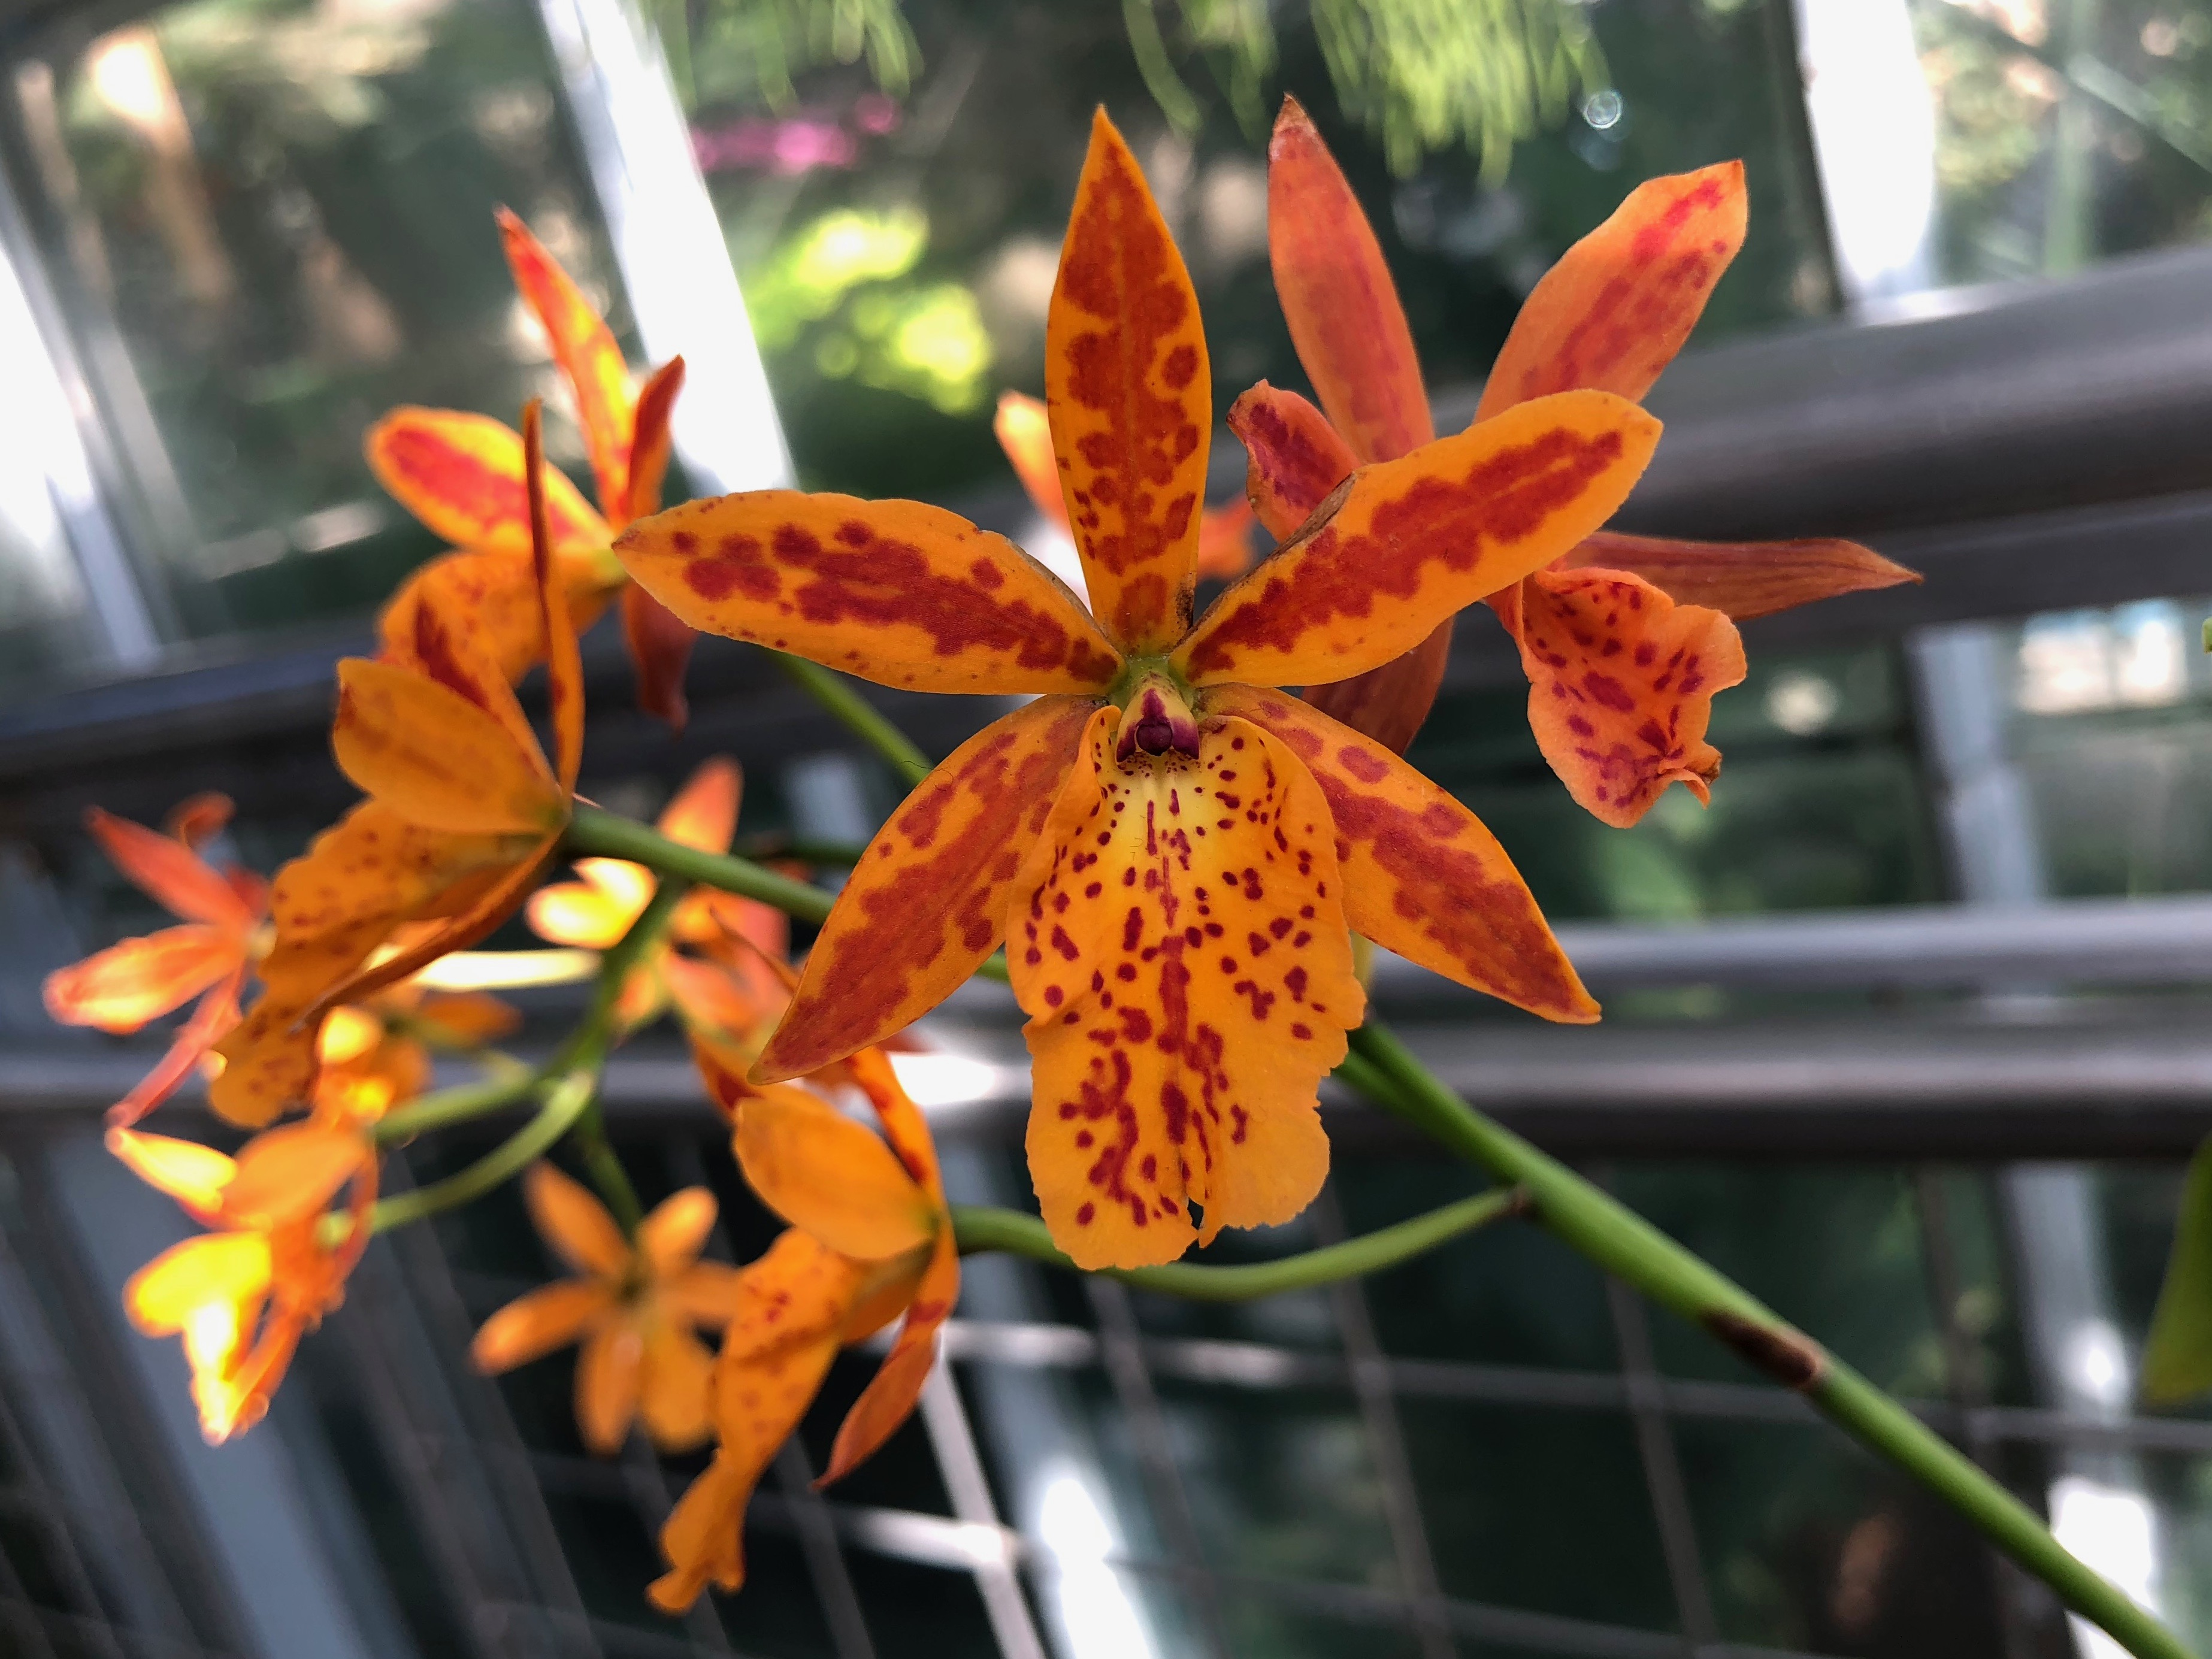 Epicatanthe Volcano Trick 'Orange Fire'